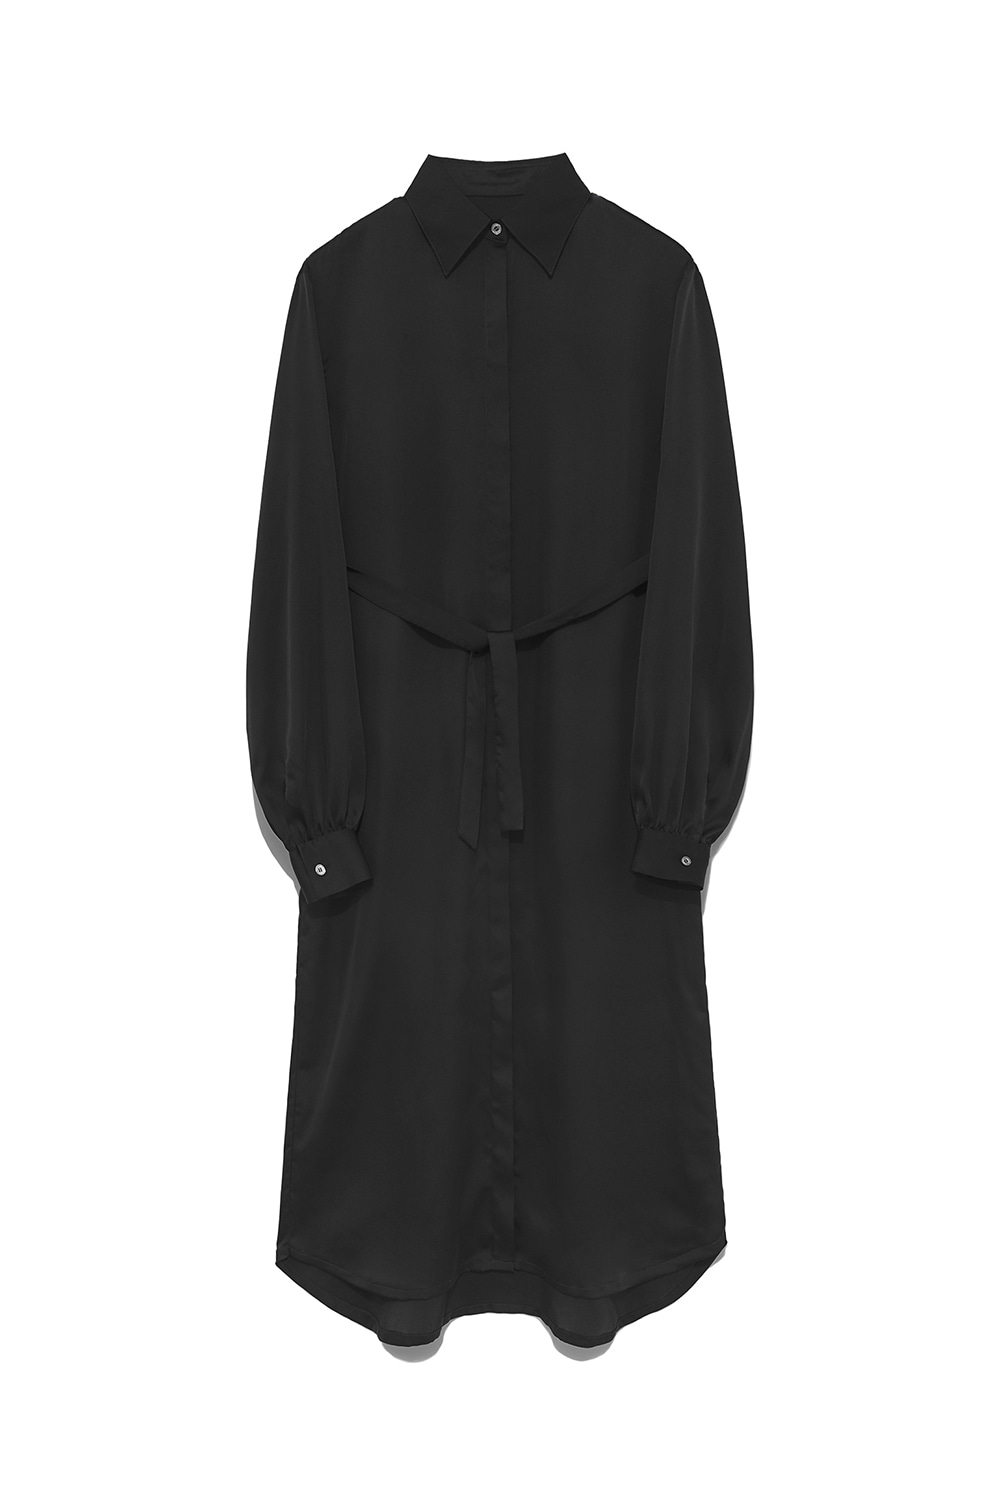 Satin Long Shirts Dress Women [Black]